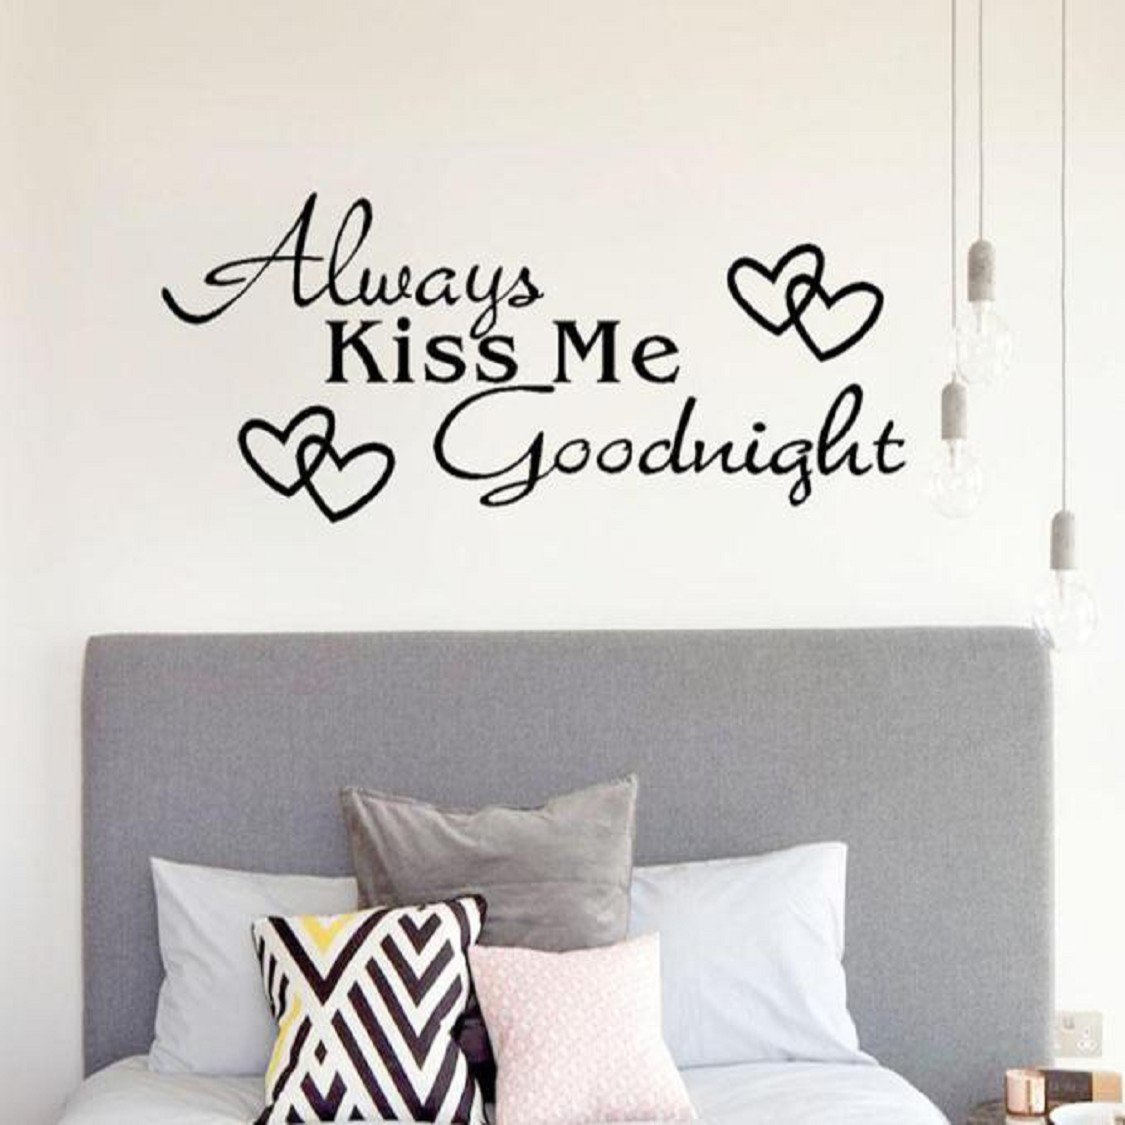 Wall Stickers, Naladoo Always Kiss Me Goodnight Home Decor Wall Sticker Decal Bedroom Vinyl Art Mural IU32566436436